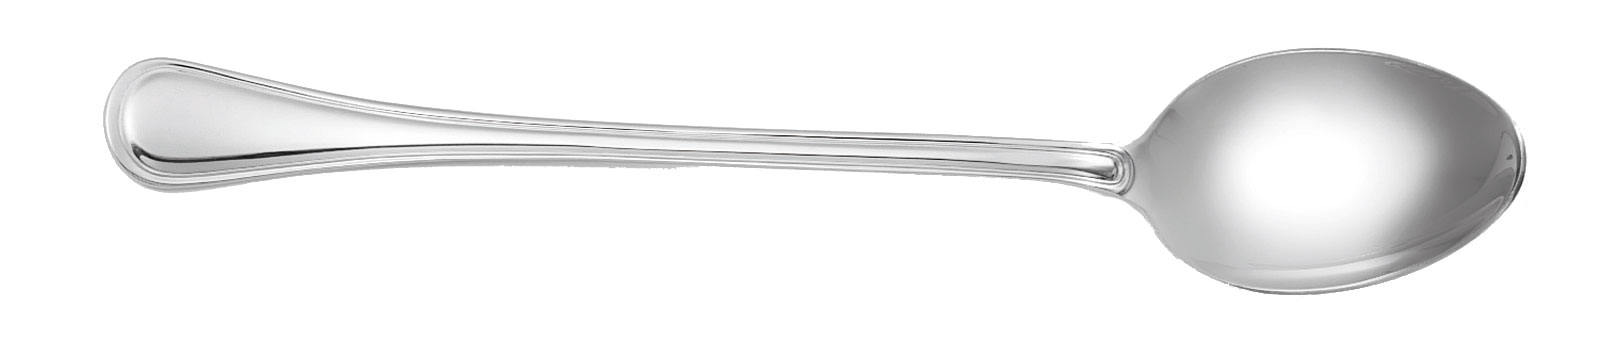 Walco Stainless UL-125 serving spoon, solid